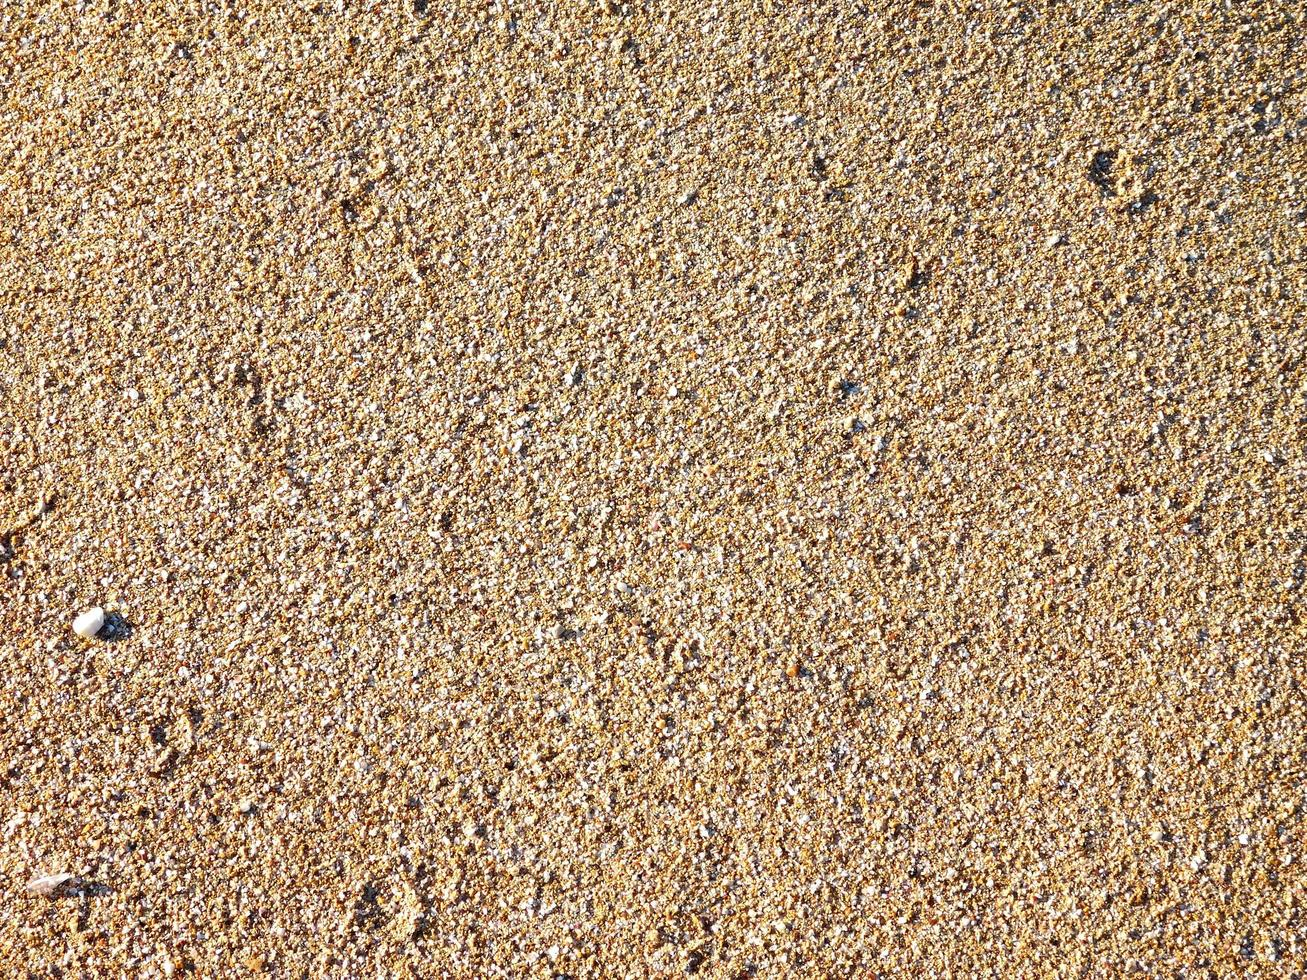 Patch of sand for background or texture photo